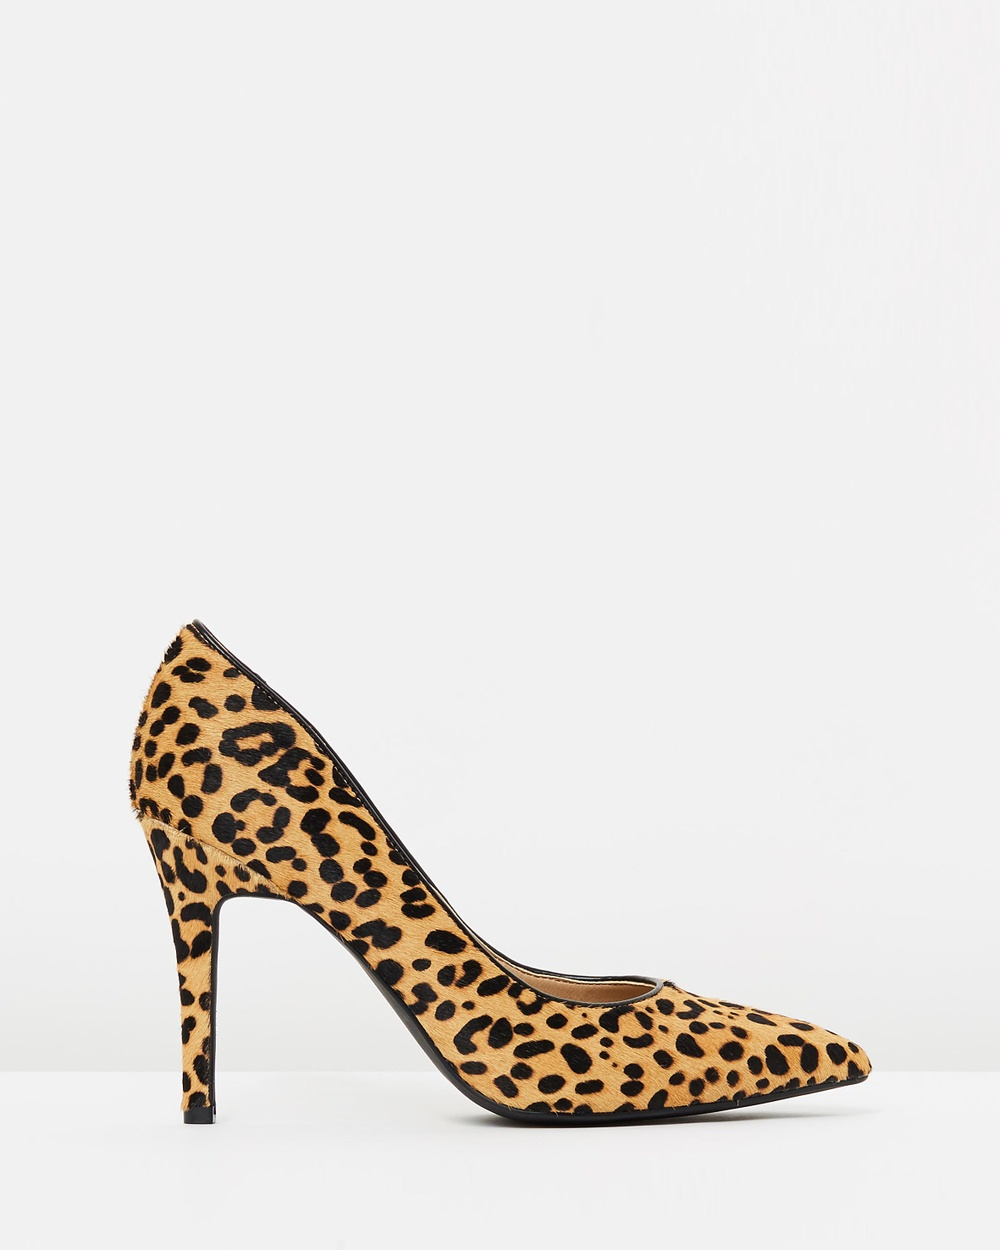 Atmos & Here ICONIC EXCLUSIVE Elaine Leather Pumps All Pumps Leopard Pony Hair ICONIC EXCLUSIVE Elaine Leather Pumps